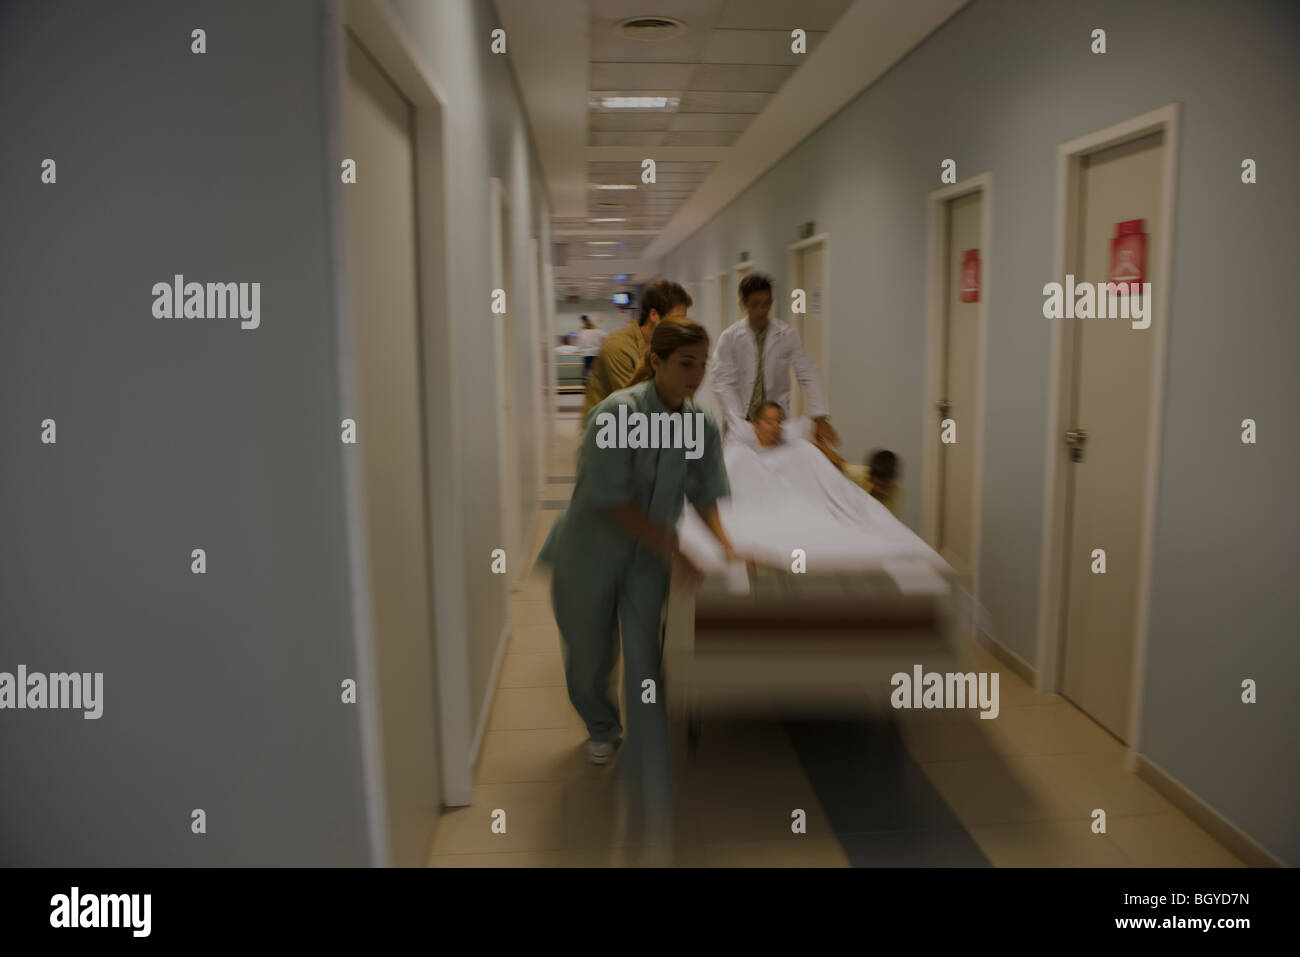 Healthcare workers running with patient on gurney in hospital corridor - Stock Image